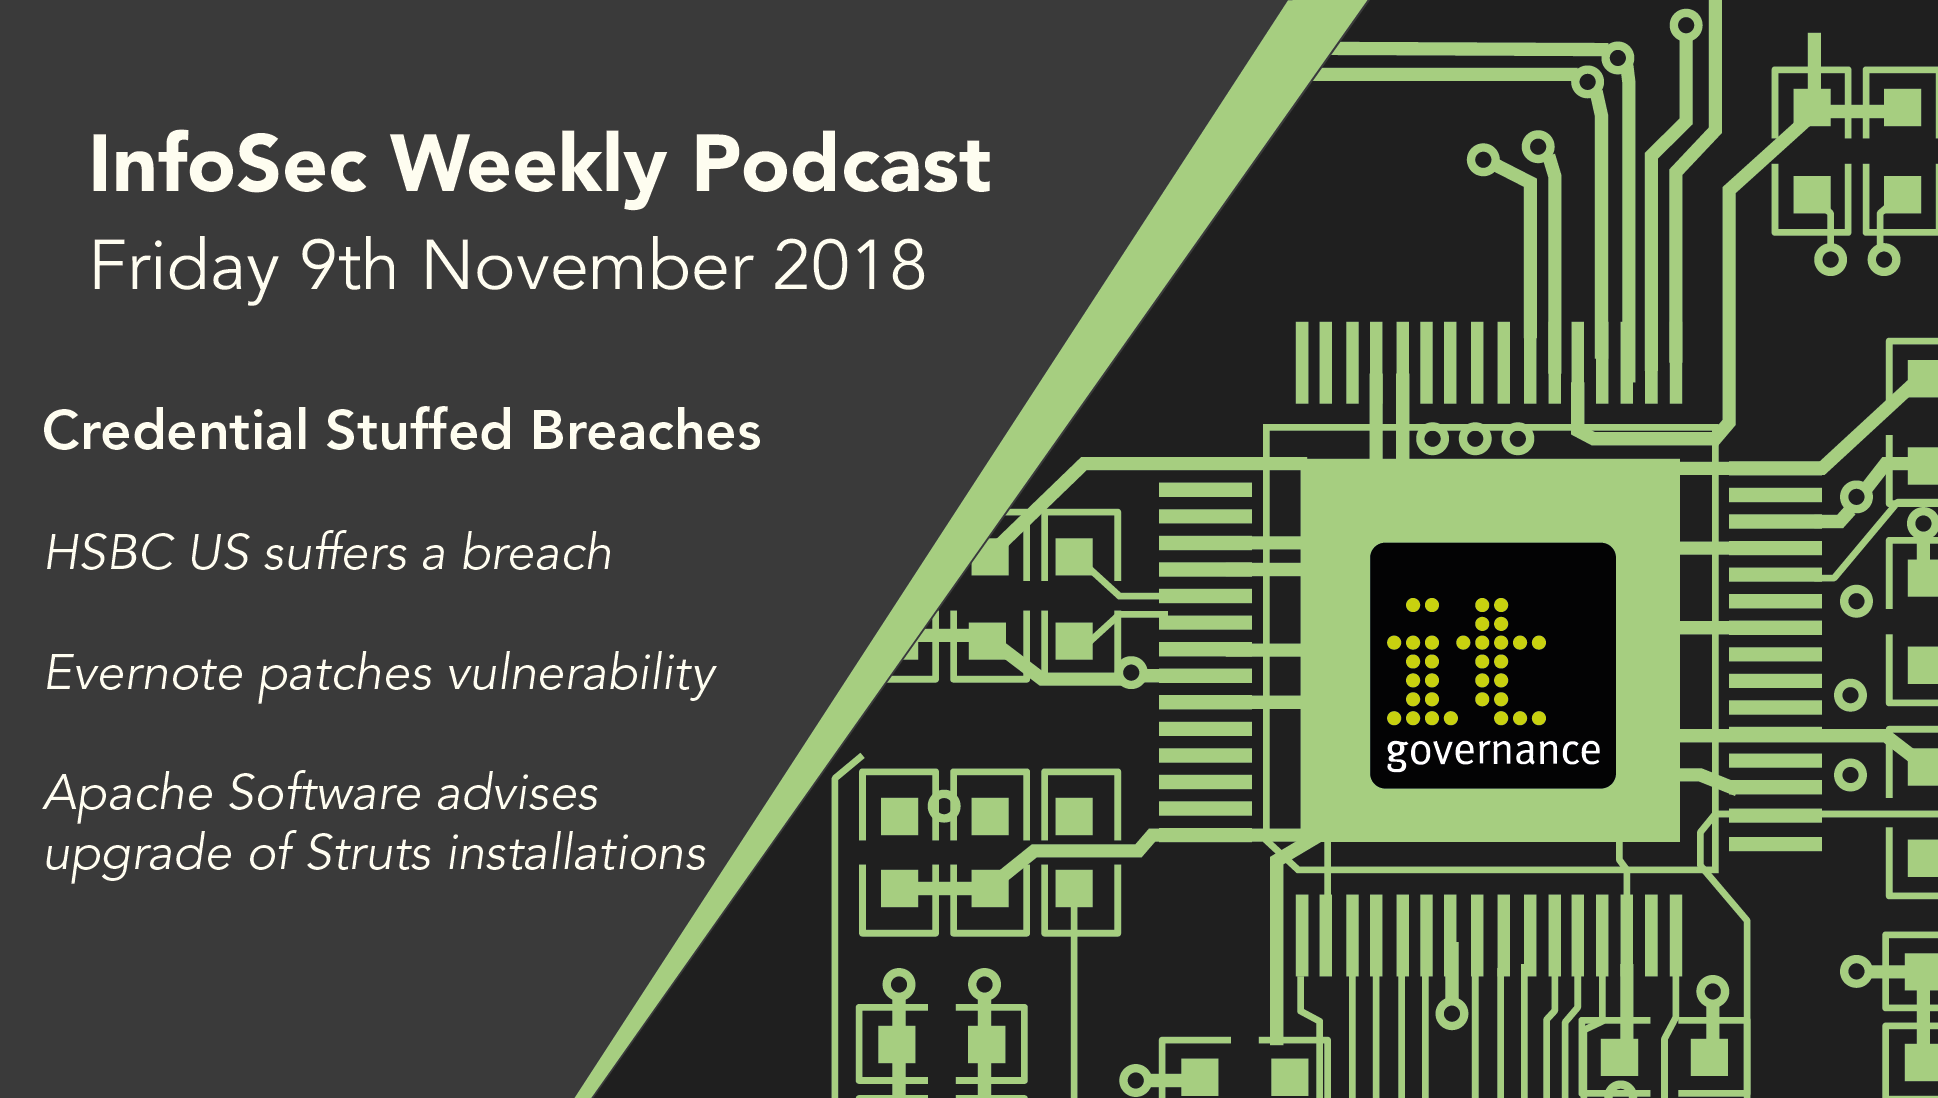 Weekly podcast: HSBC, Evernote and Apache Struts - IT